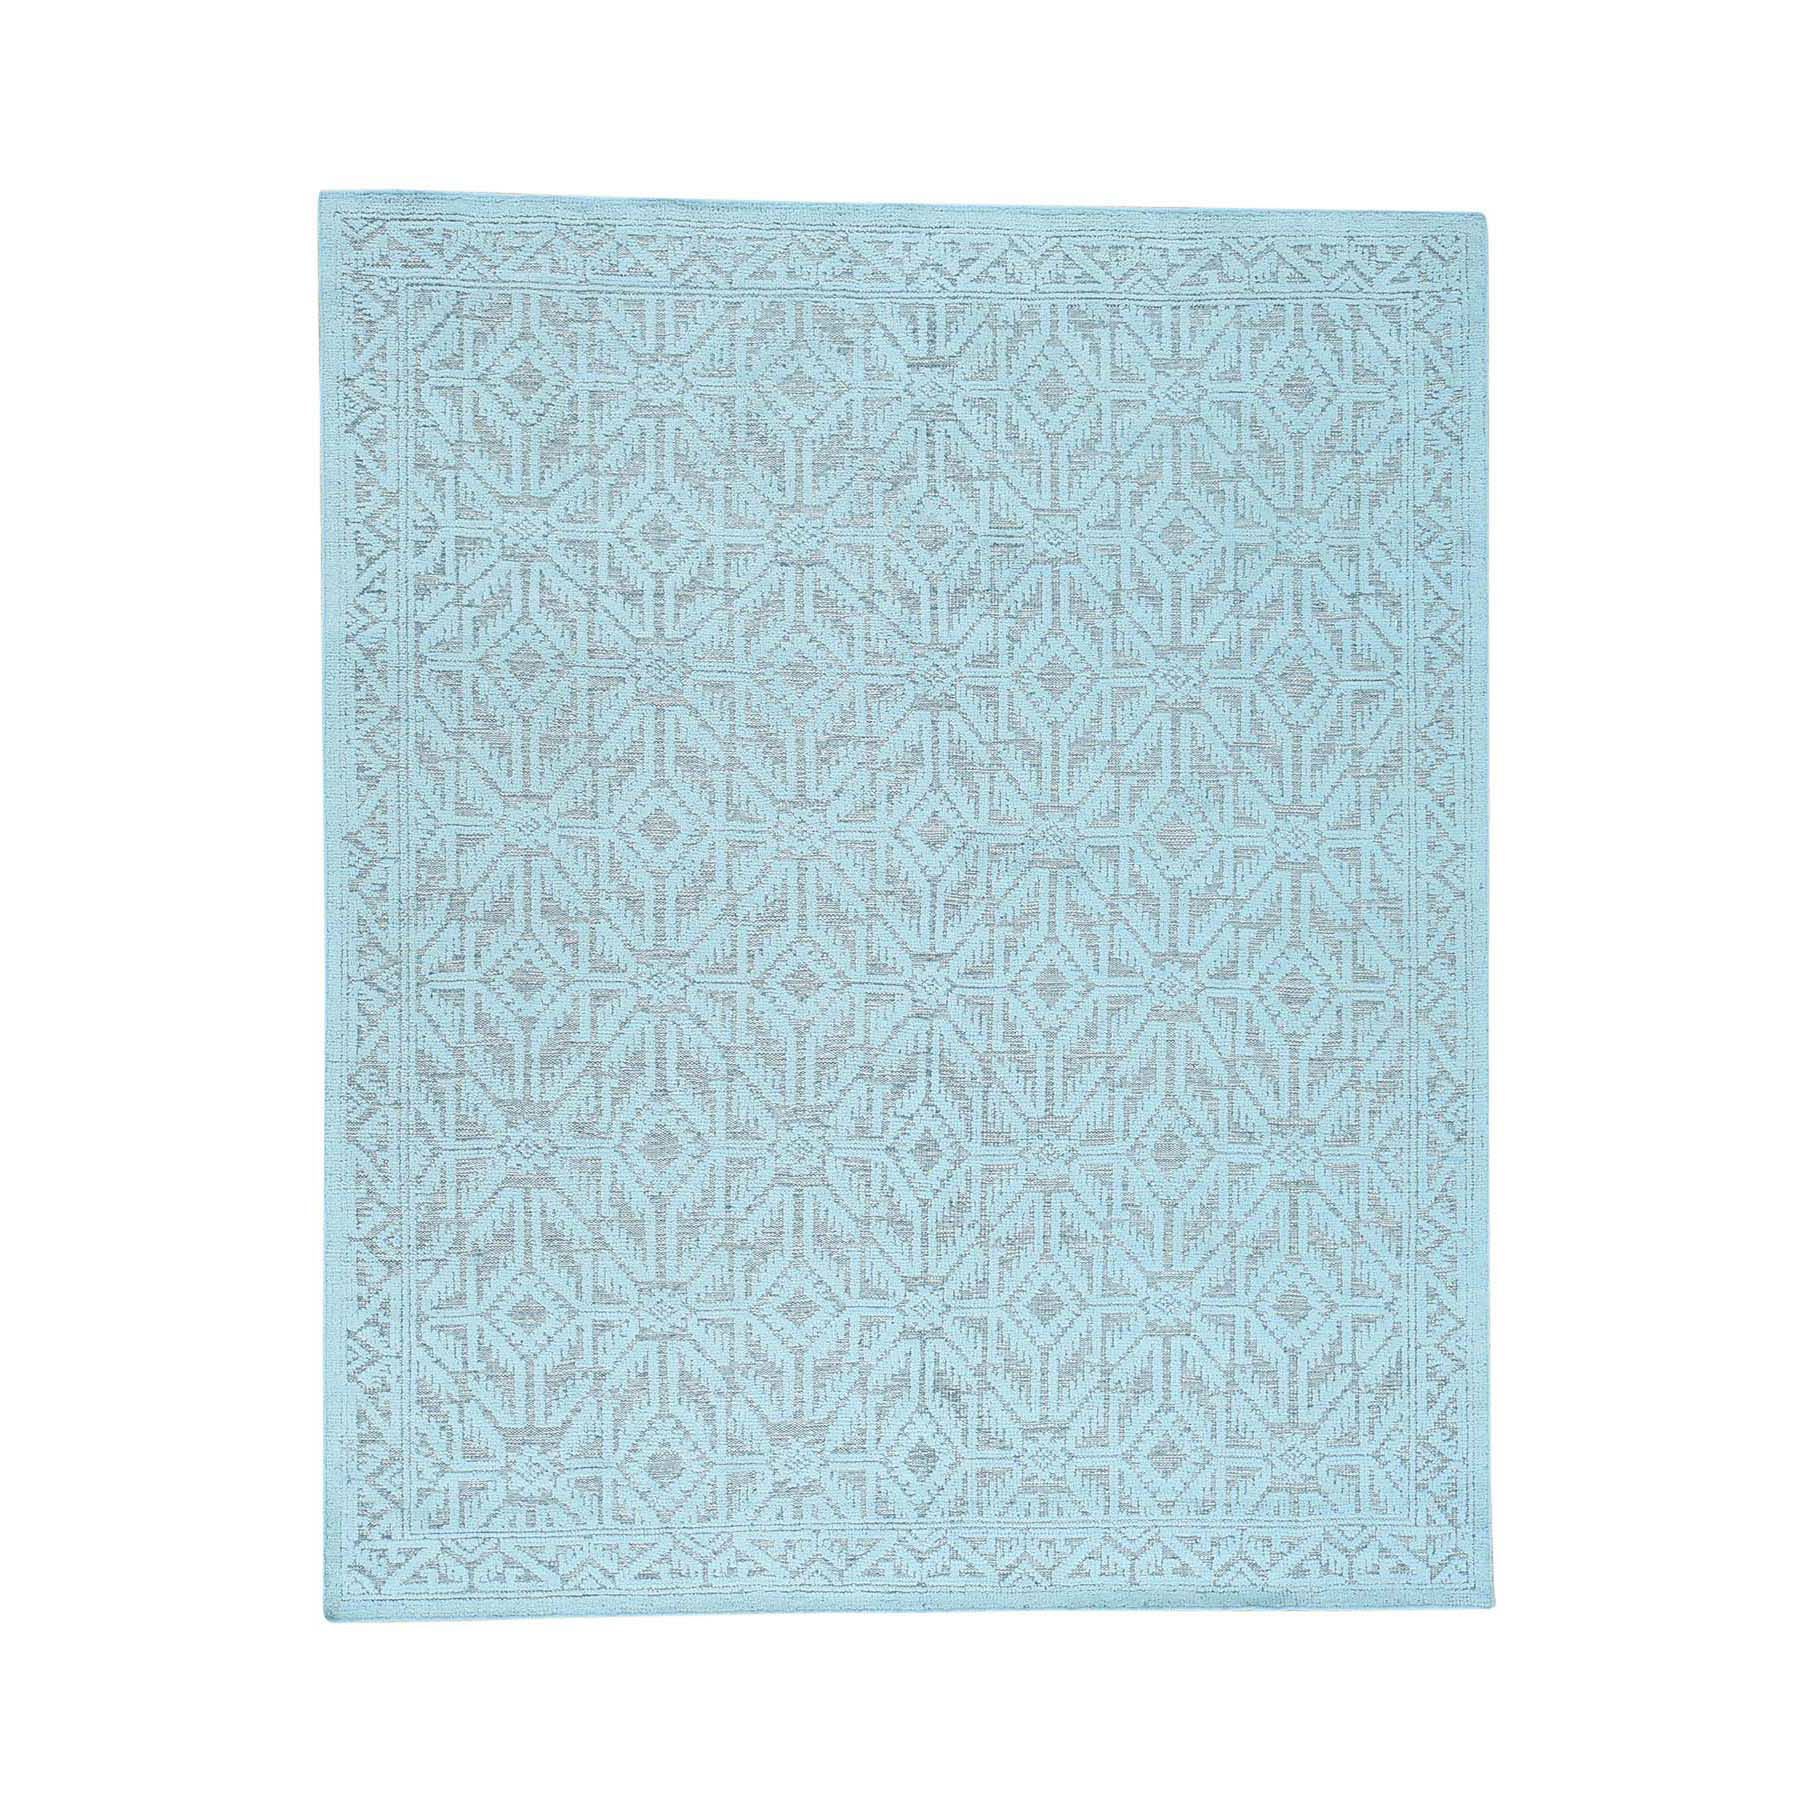 9'X12' Oxidized Wool Hi And Low Pile Oushak Design Seafoam Green Rug moac6dad